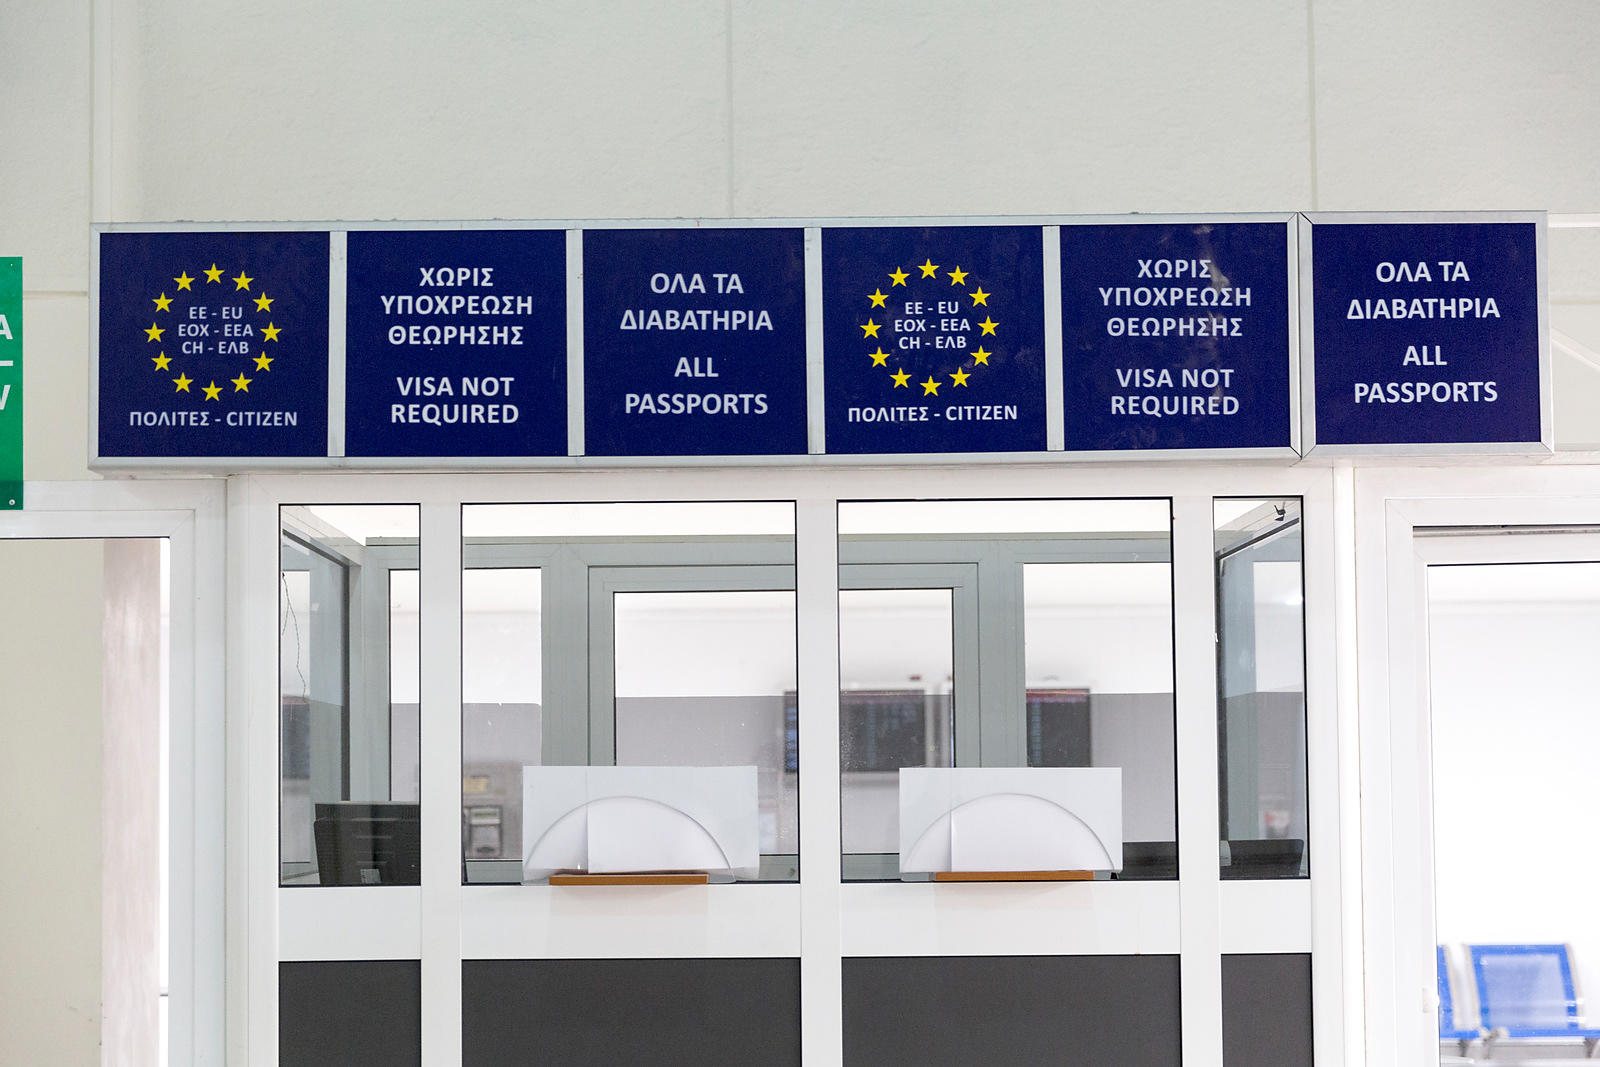 Bureau de la police des frontière et panneau indiquant l'appartenance à un pays de l'Union Europééne, aéroport de Héraklion, Crète, Grèce / Border Police Office and sign indicating membership of a European Union country, Heraklion airport, Crete, Greece